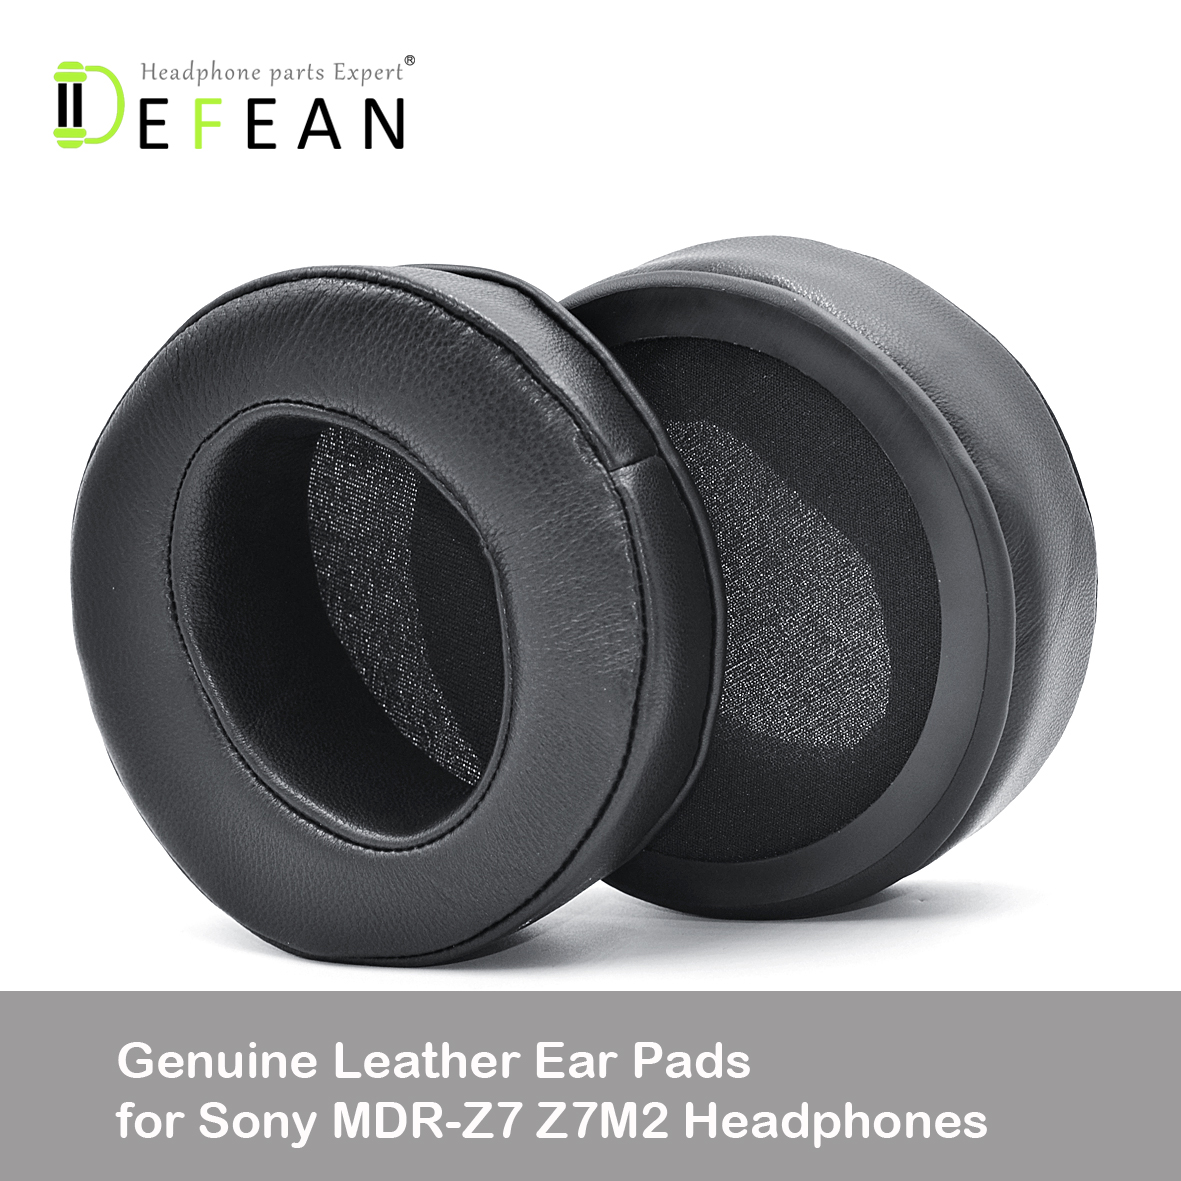 Defean upgrade Angle Genuine Leather Ear Pads Cushion earpad Replacement for Sony MDR Z7 Z7M2 Headphones